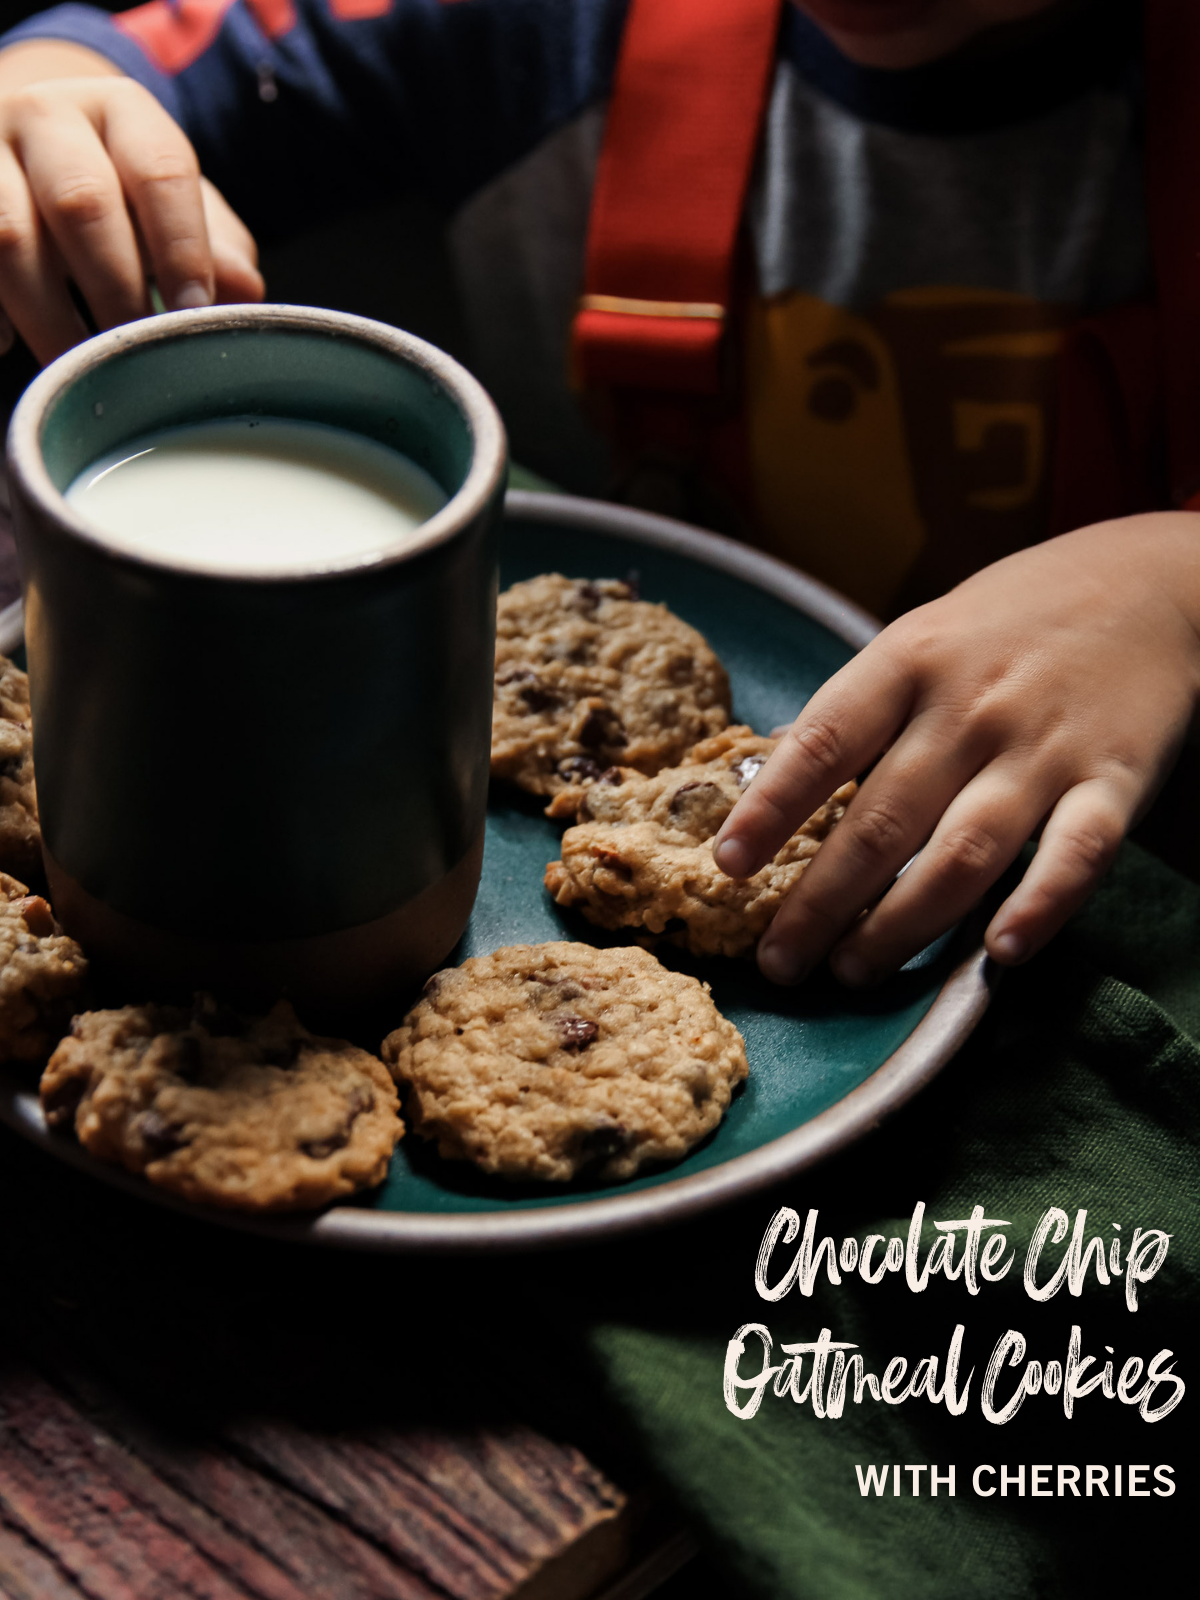 The best Chocolate Chip Oatmeal Cookies Recipe with cherries